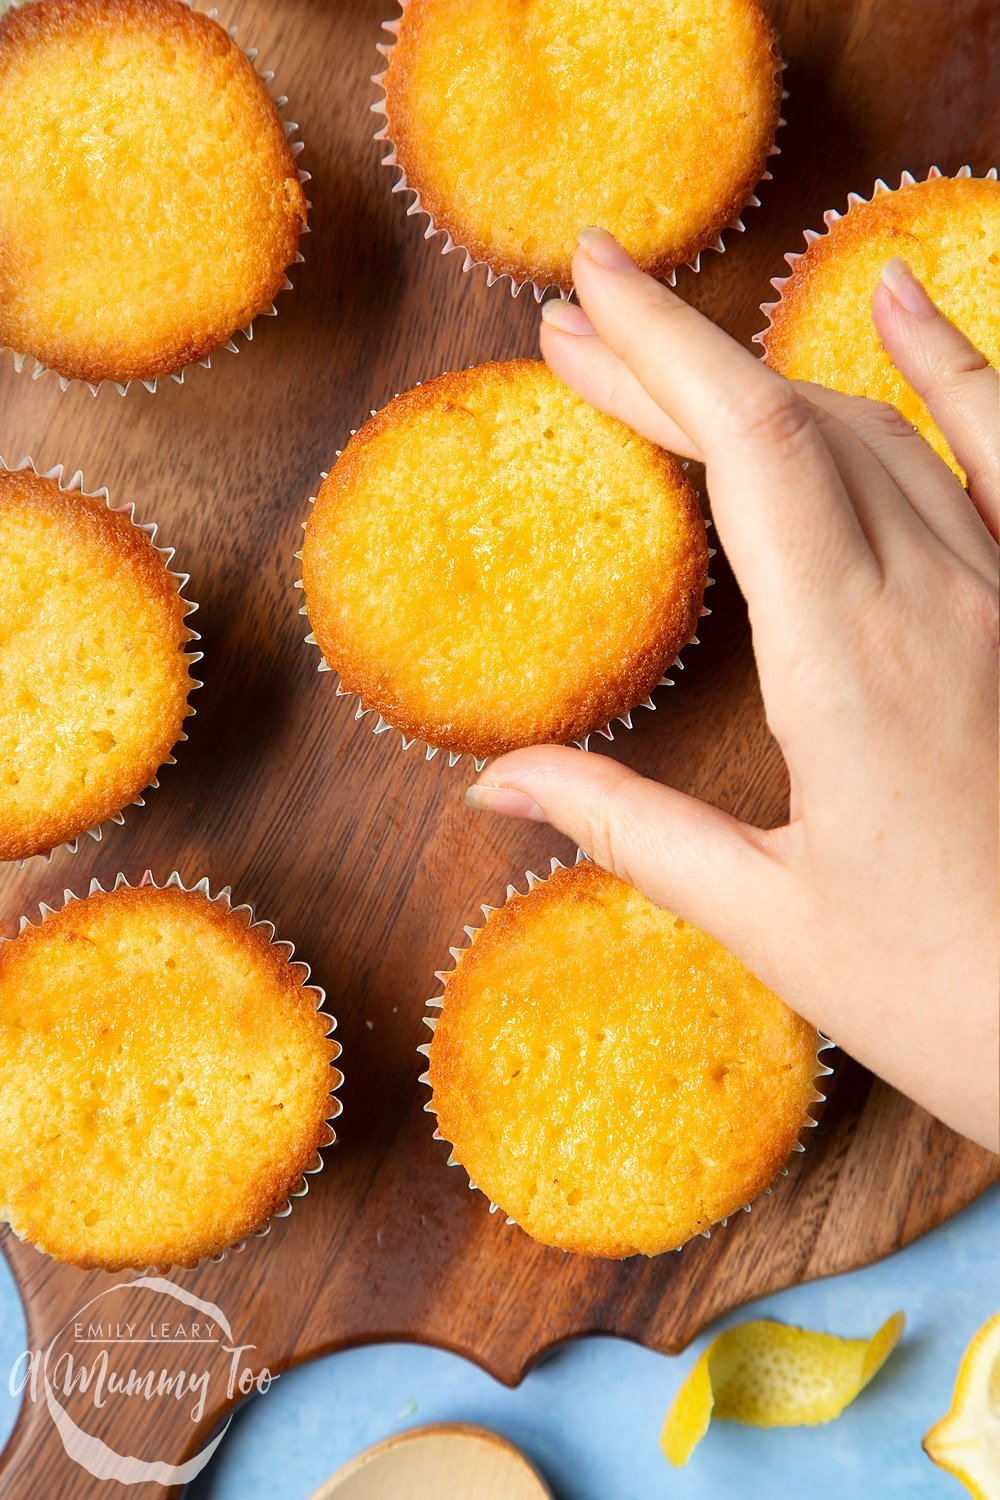 Lemon drizzle cupcakes on a wooden board. A hand reaches for one.